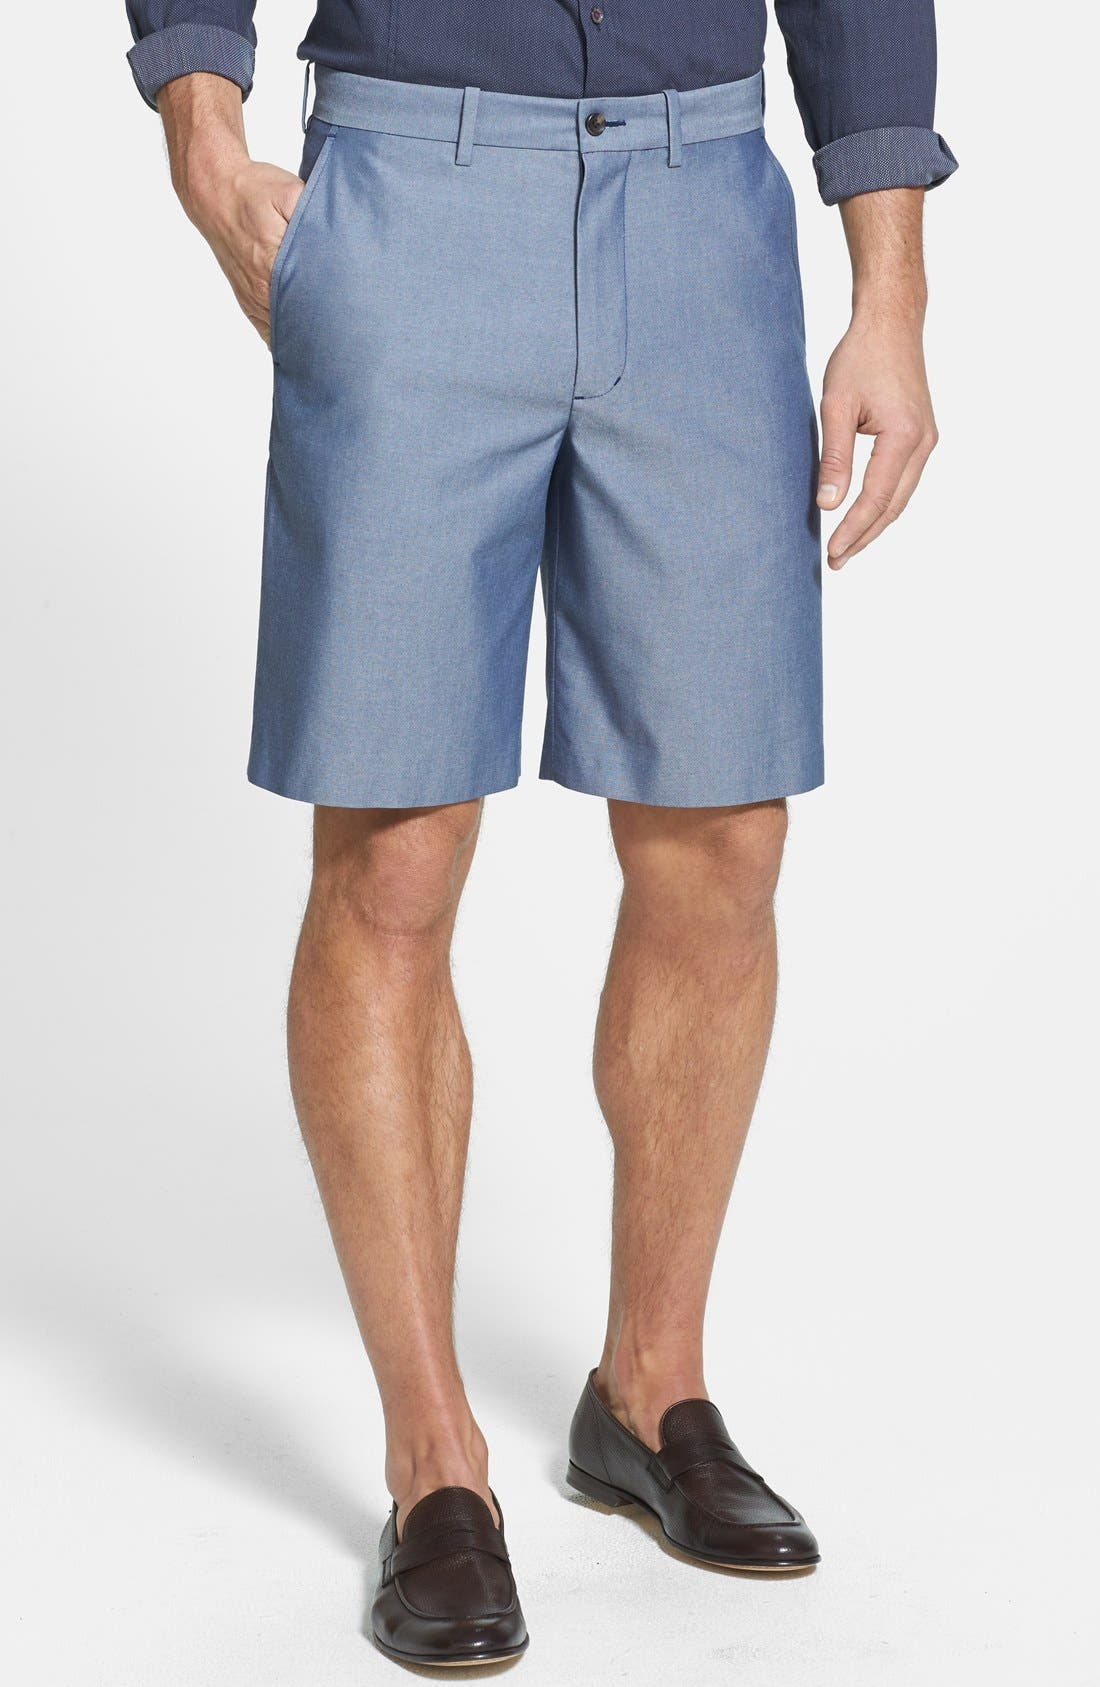 Alternate Image 1 Selected - John W. Nordstrom® Flat Front Supima® Cotton Shorts